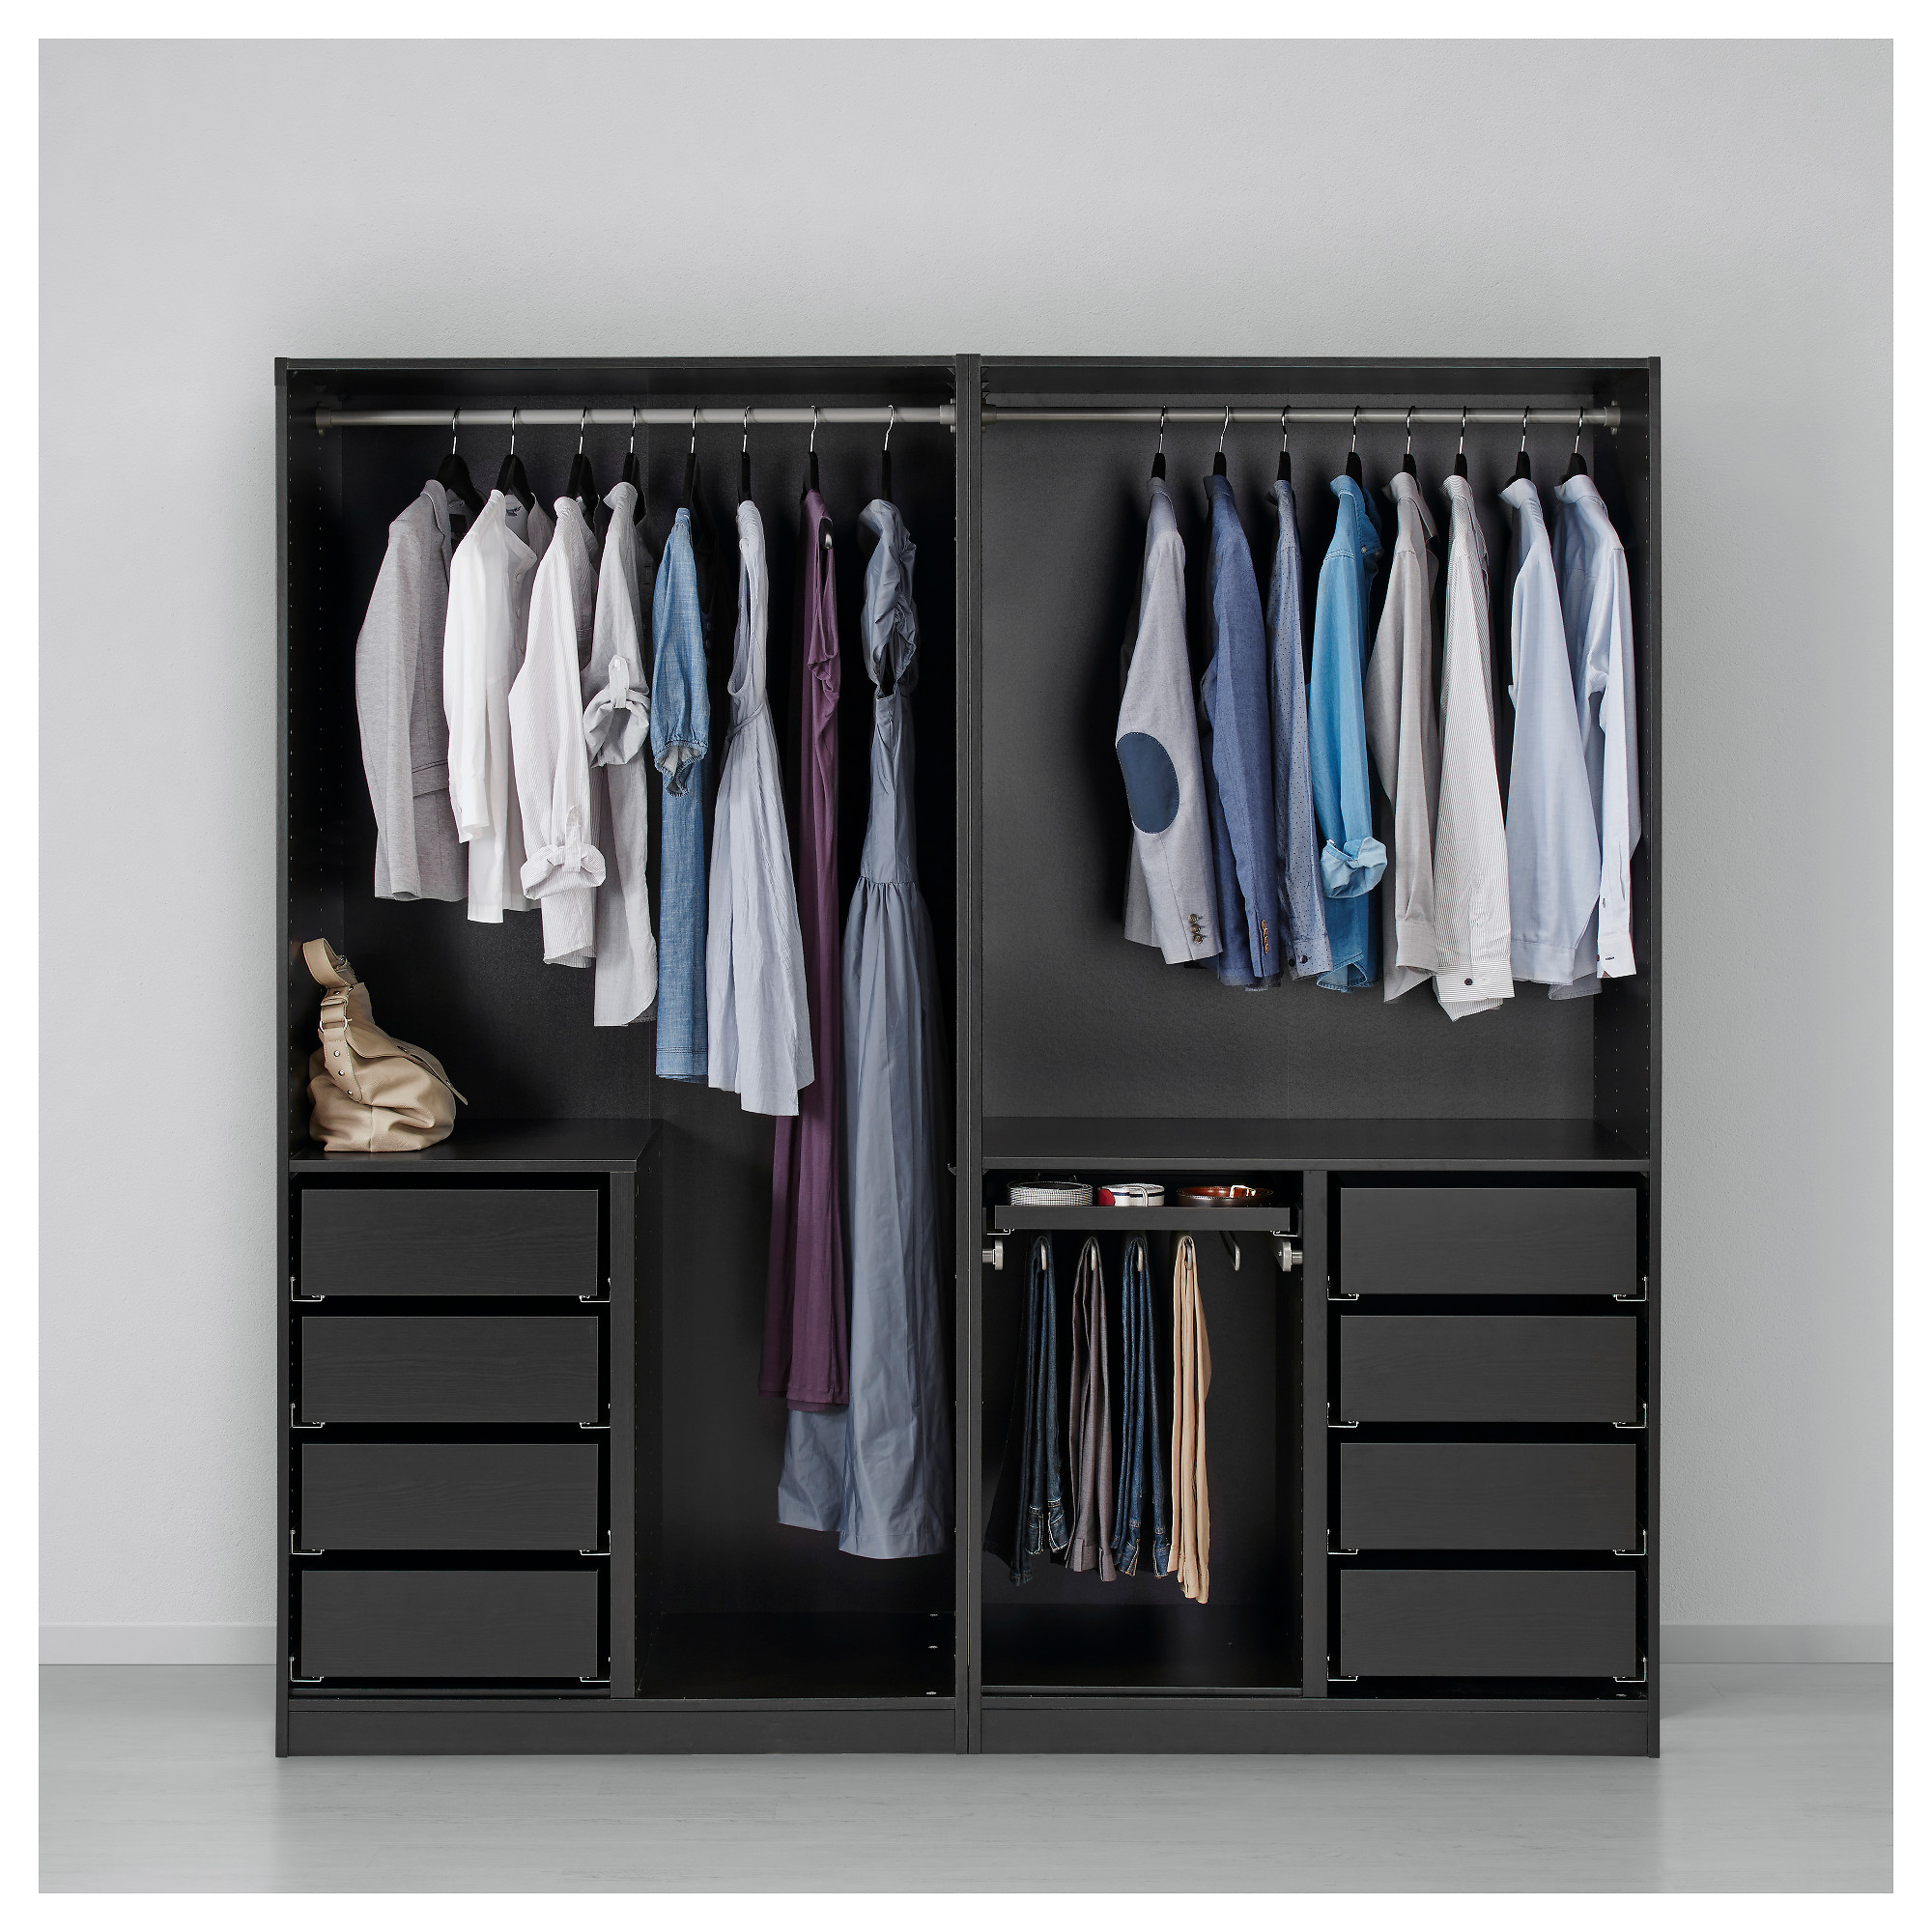 Ikea Pax Click And Collect Pax Wardrobe Black Brown Ilseng Black Brown Ikea Bedroom